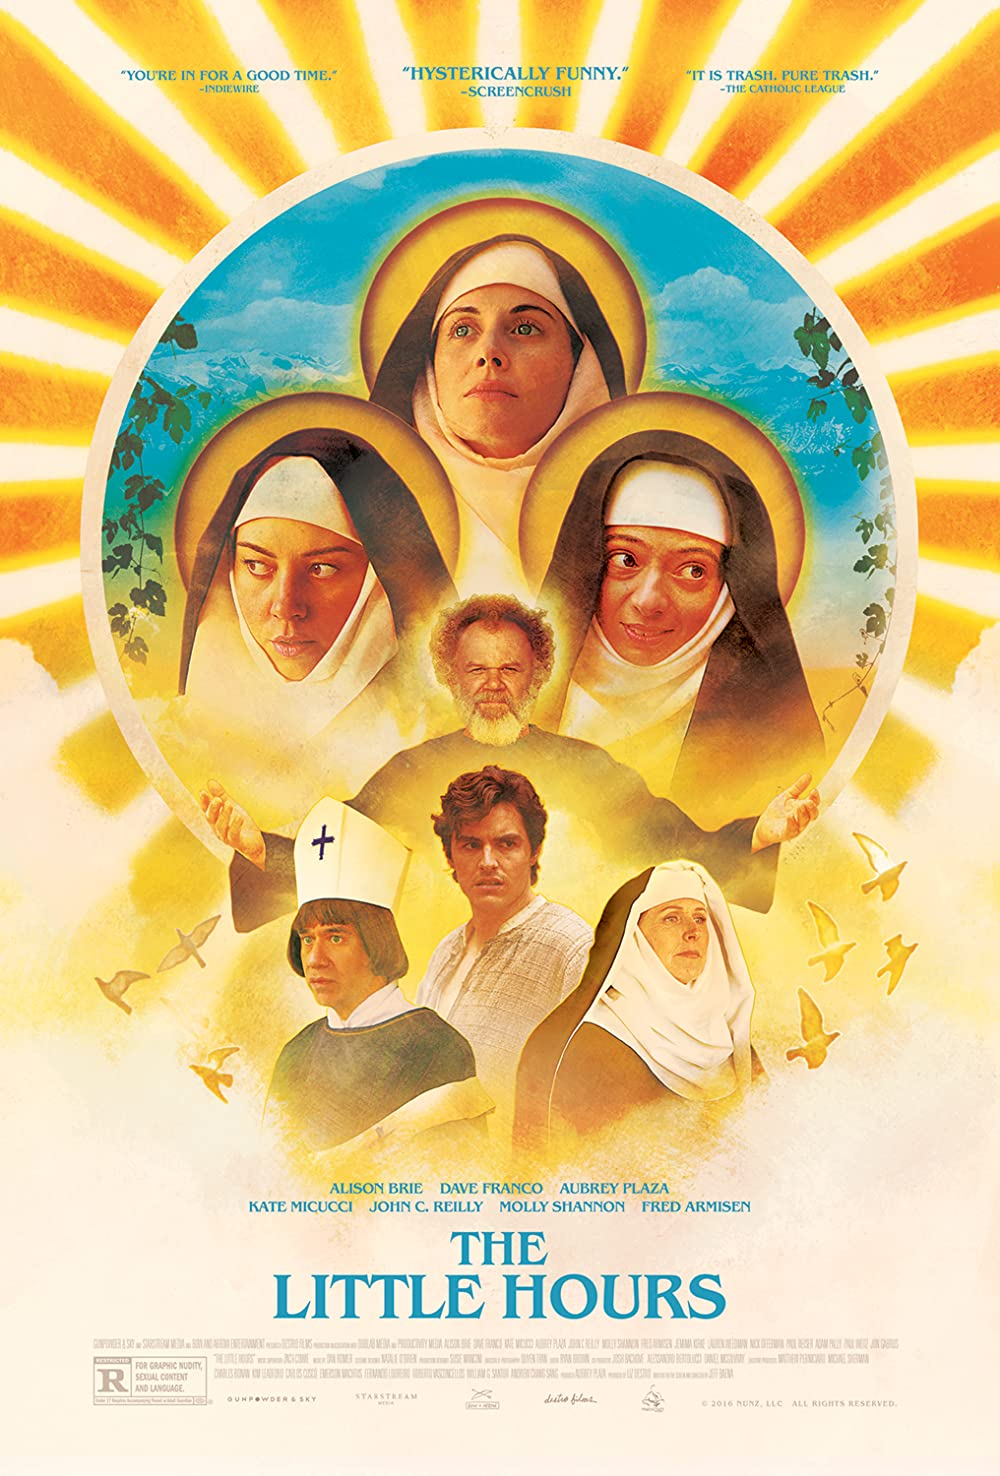 18+ The Little Hours 2017 Hindi ORG Dual Audio 1080p BluRay 1420MB Download